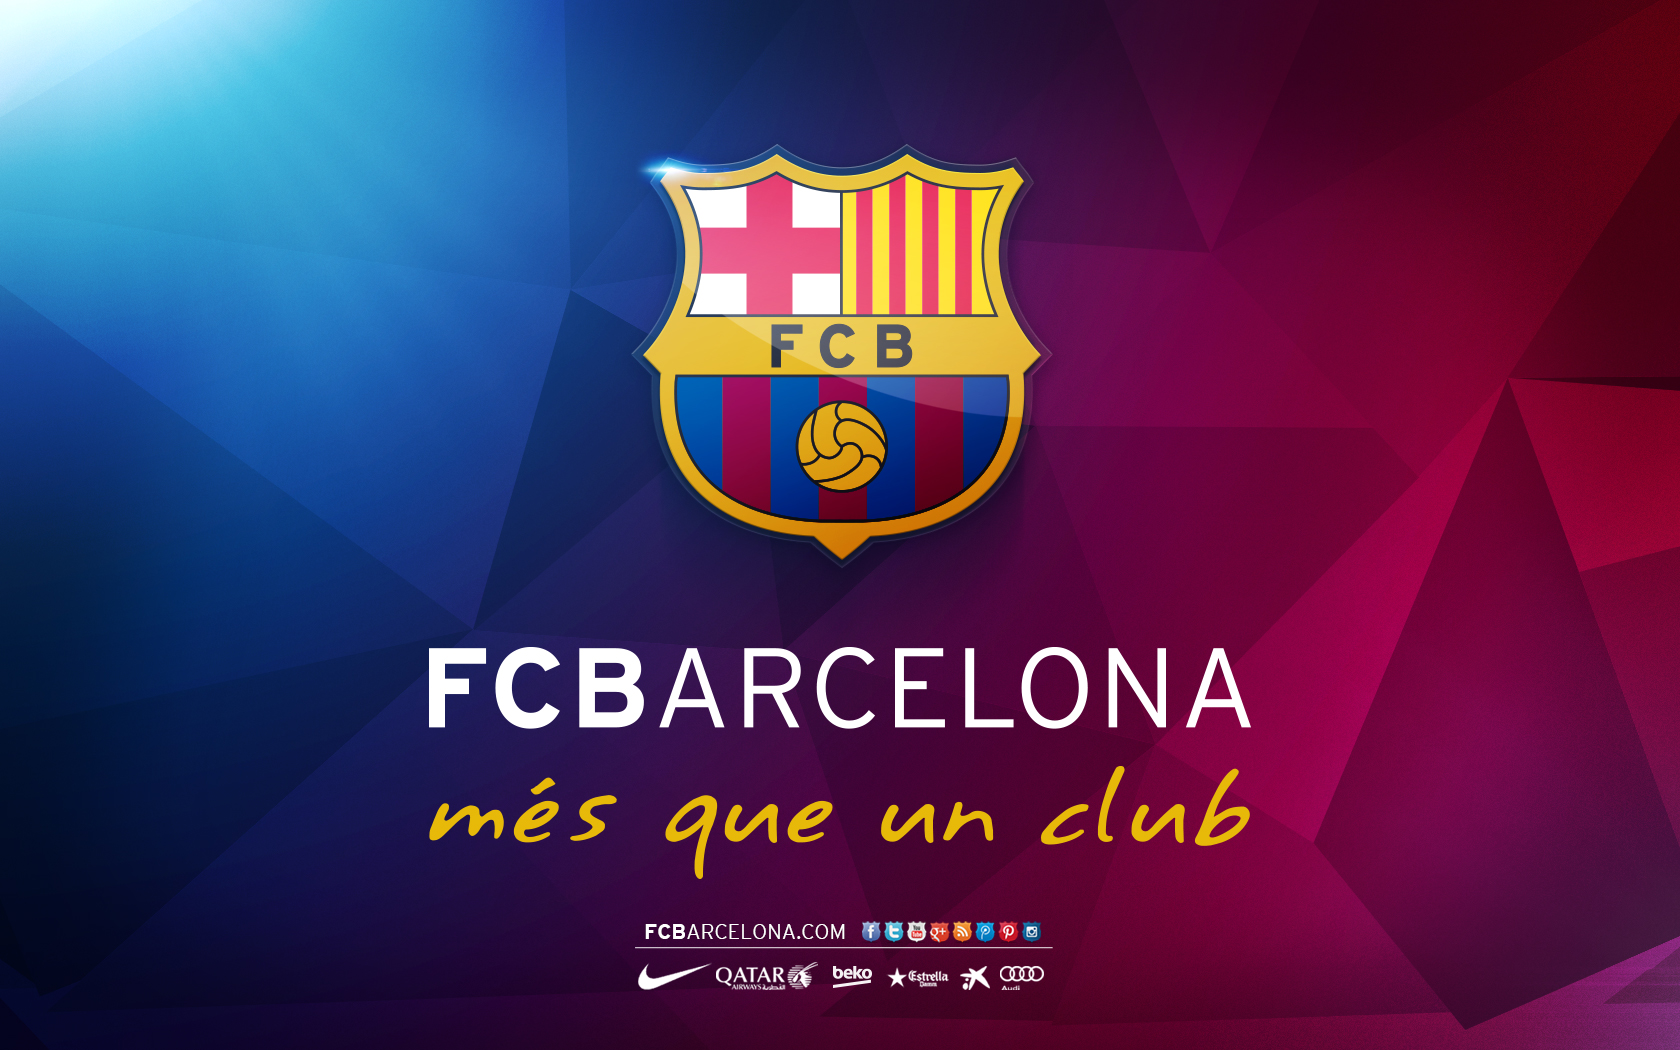 Download 1680x1050 FC Barcelona mes que un club Logo 1680x1050